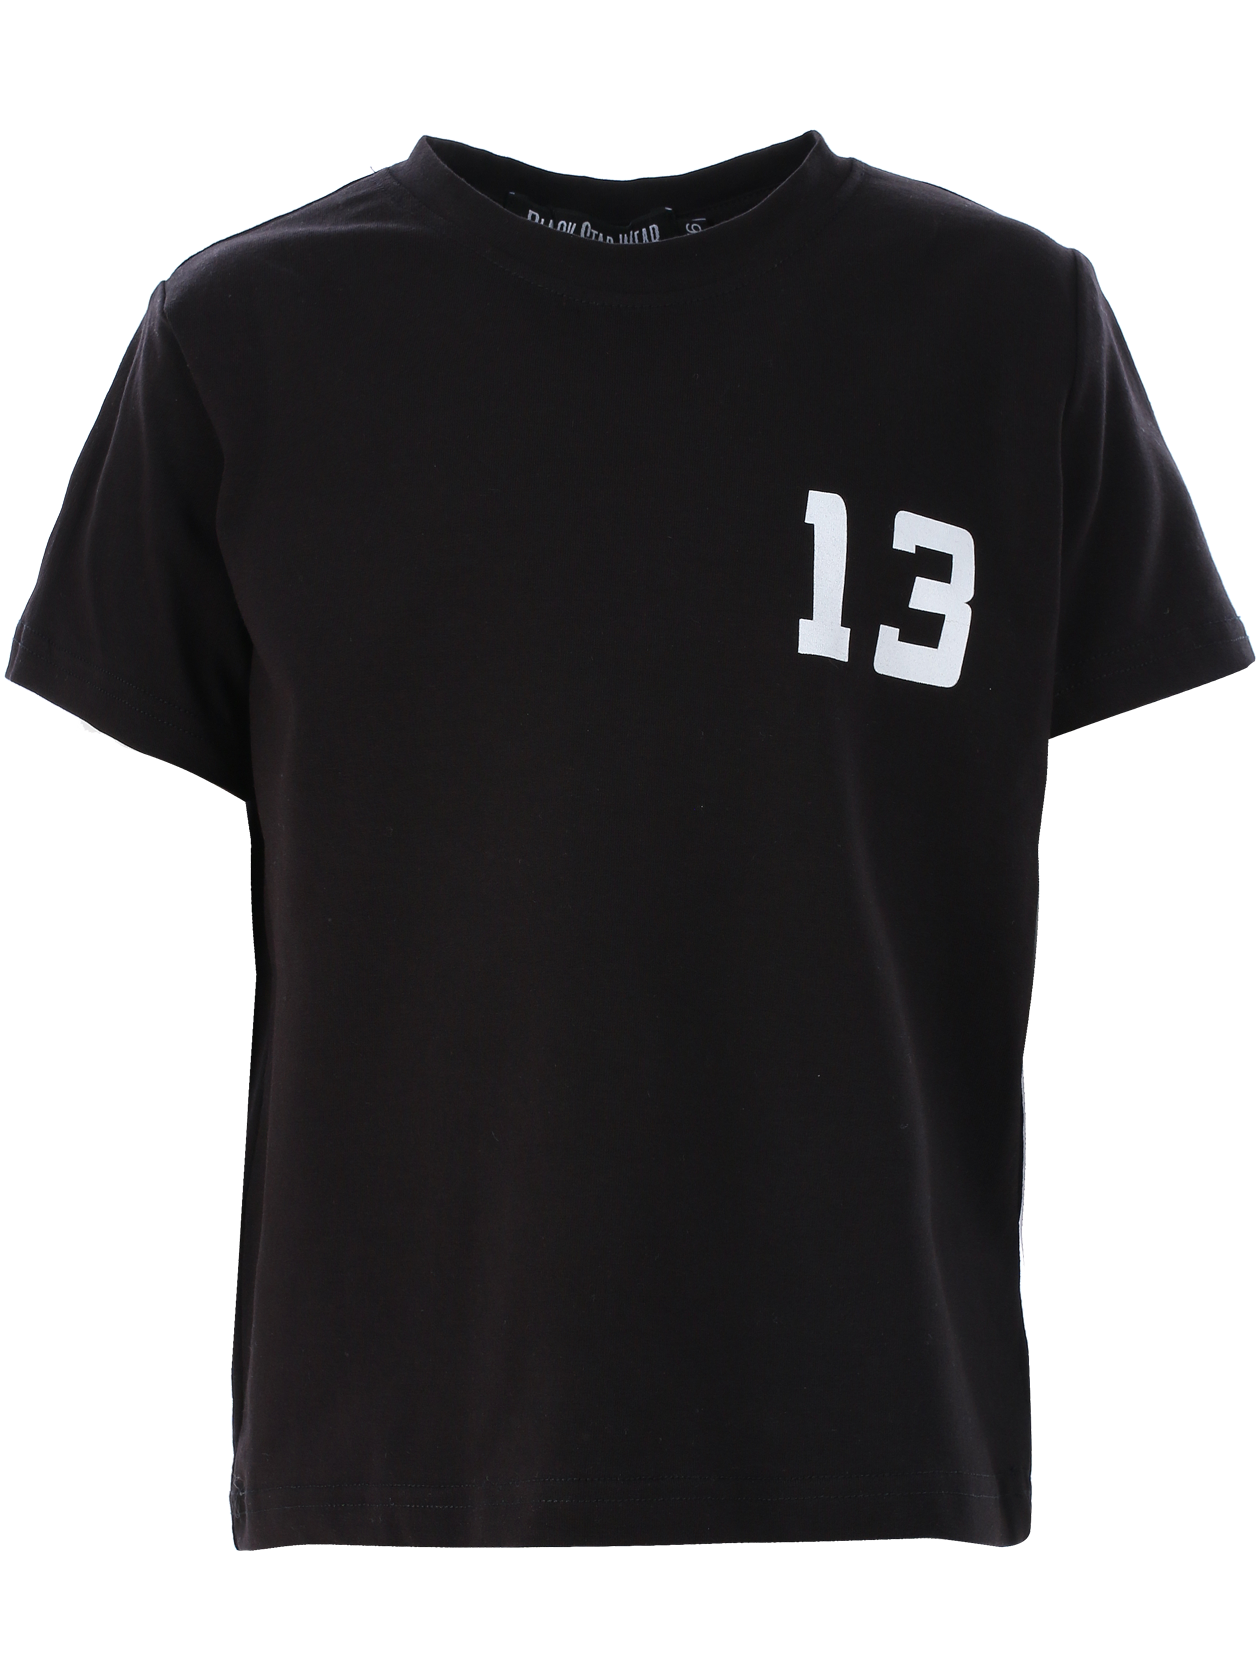 Kids t-shirt Black Star Family 13Kids t-shirt by Black Star Wear. Big asiatic print Black Star Family on the back and 13 on the chest. Made out of natural cotton tissue. Avaliable in black.<br><br>size: 5-6 years<br>color: Black<br>gender: unisex